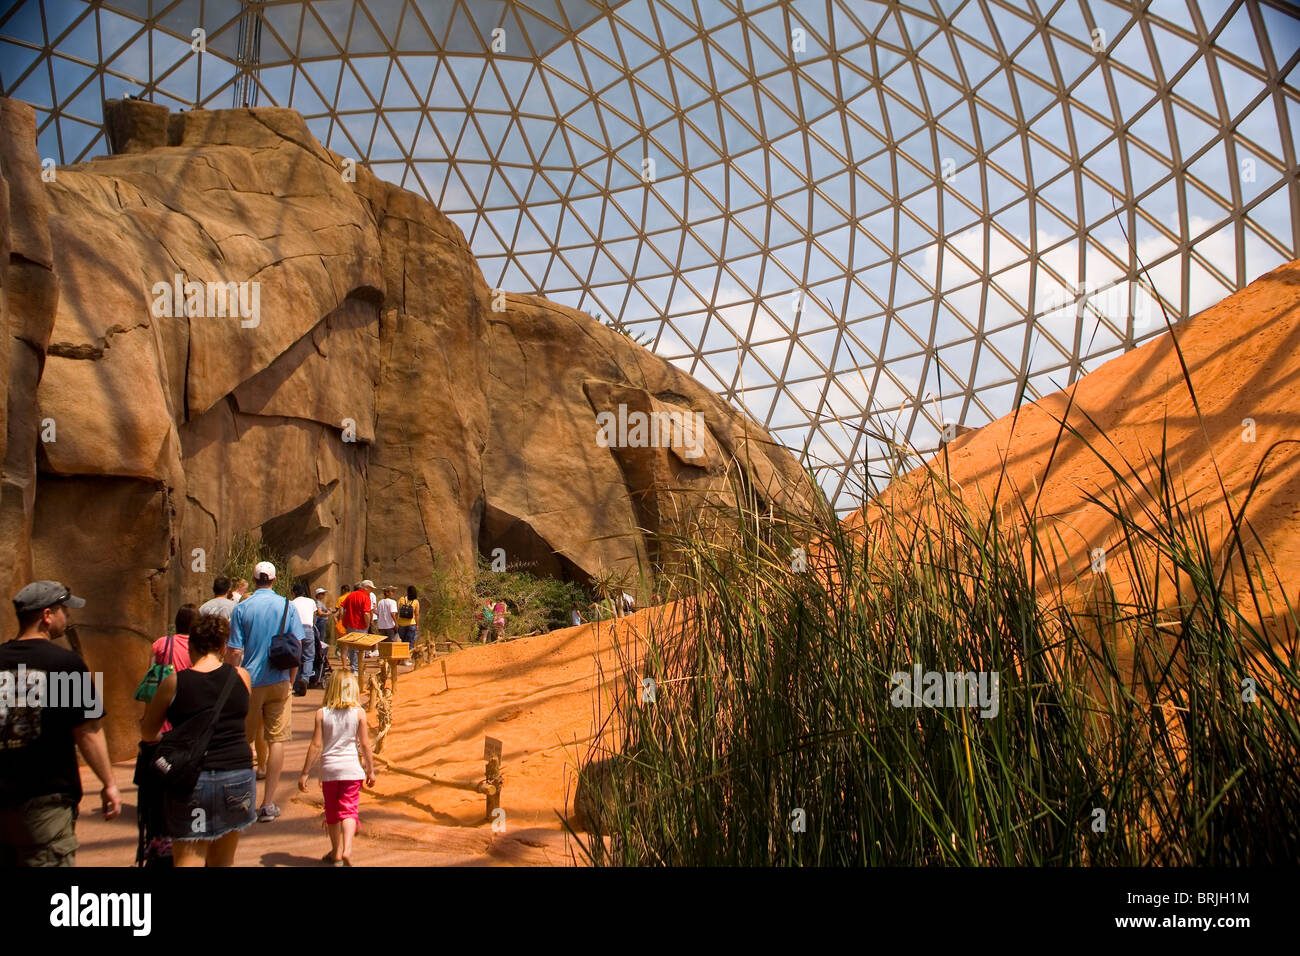 Henry Doorly Zoo - Desert Dome - Stock Image & Henry Doorly Zoo Stock Photos \u0026 Henry Doorly Zoo Stock Images - Alamy